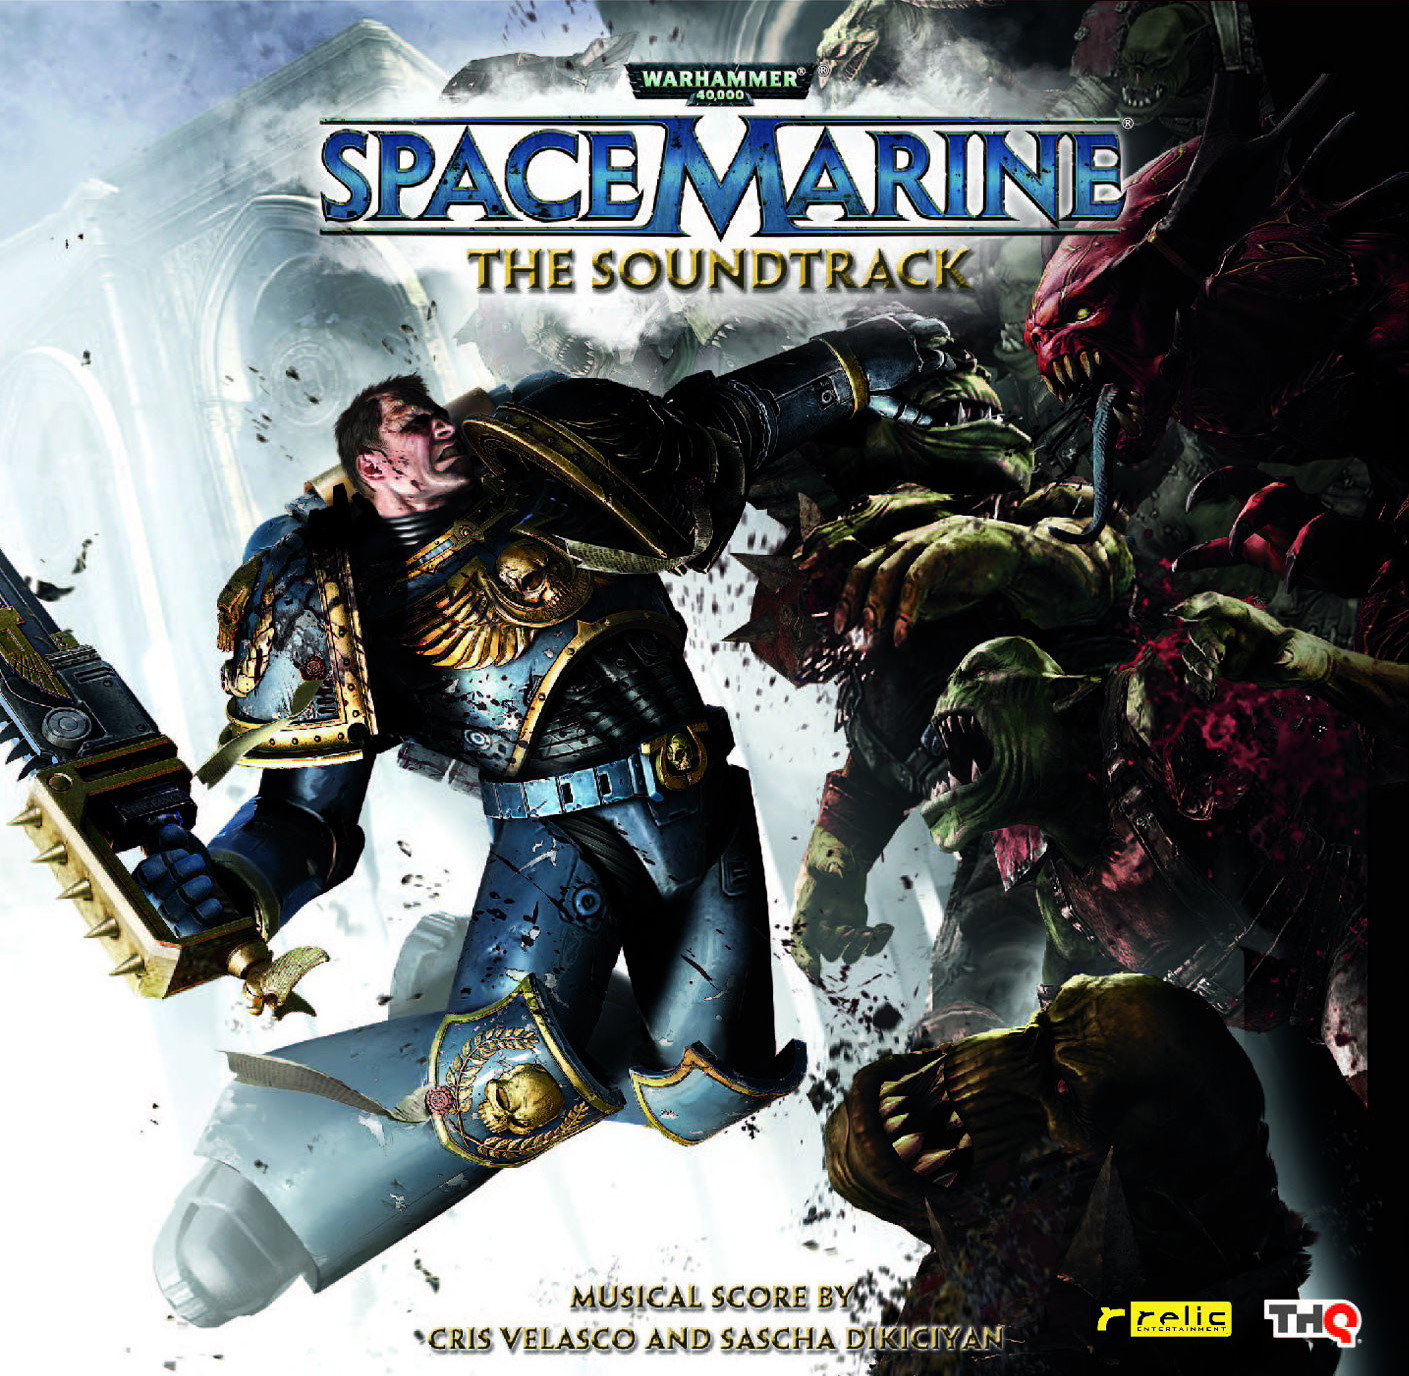 http://www.game-ost.com/static/covers_soundtracks/1/6/16759_410865.jpg